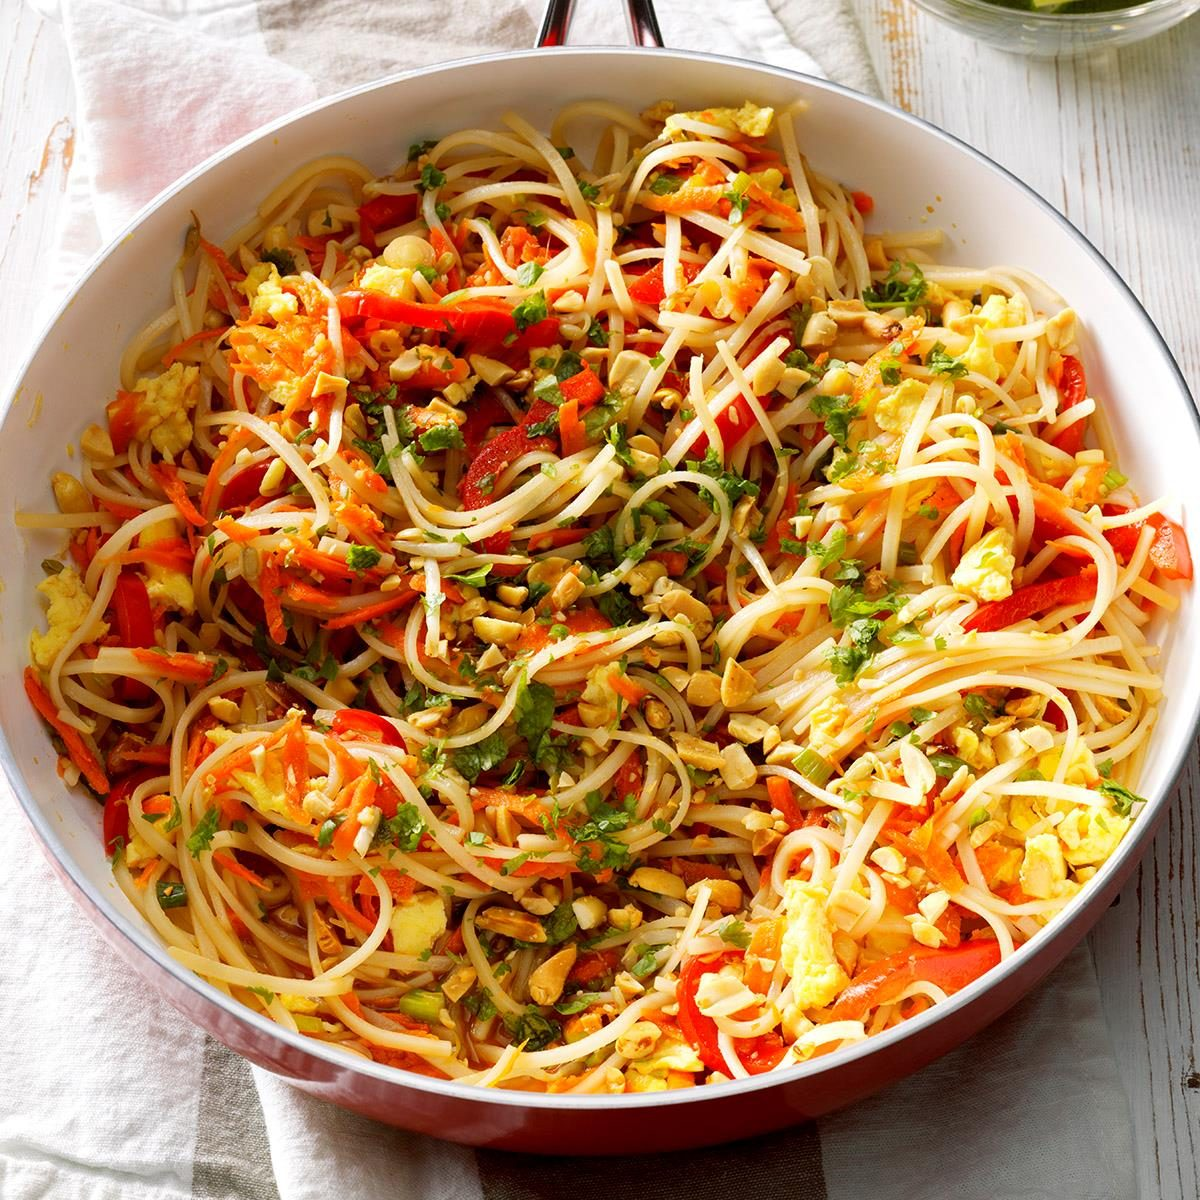 Monday: Vegetarian Pad Thai